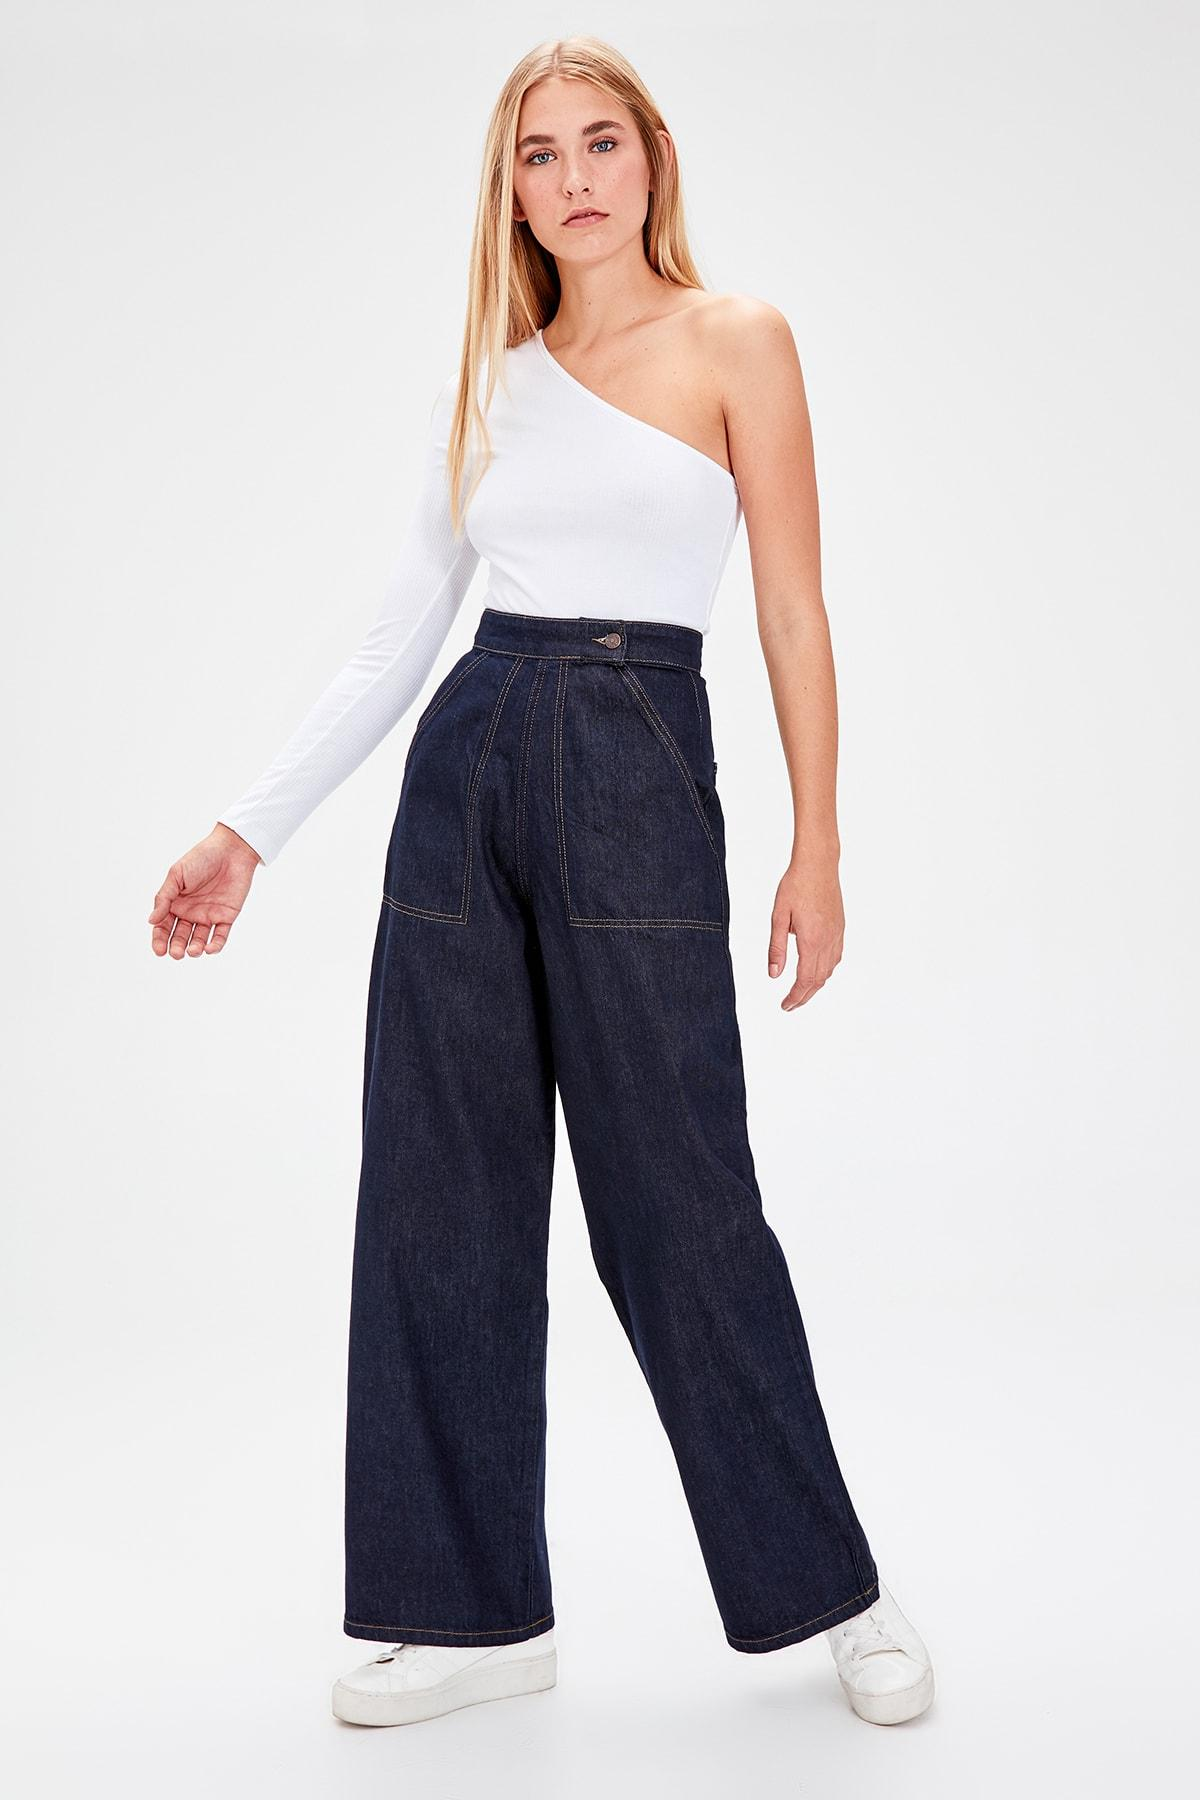 Trendyol Navy Blue Button Detail High Bel Wide Leg Jeans TWOAW20JE0089